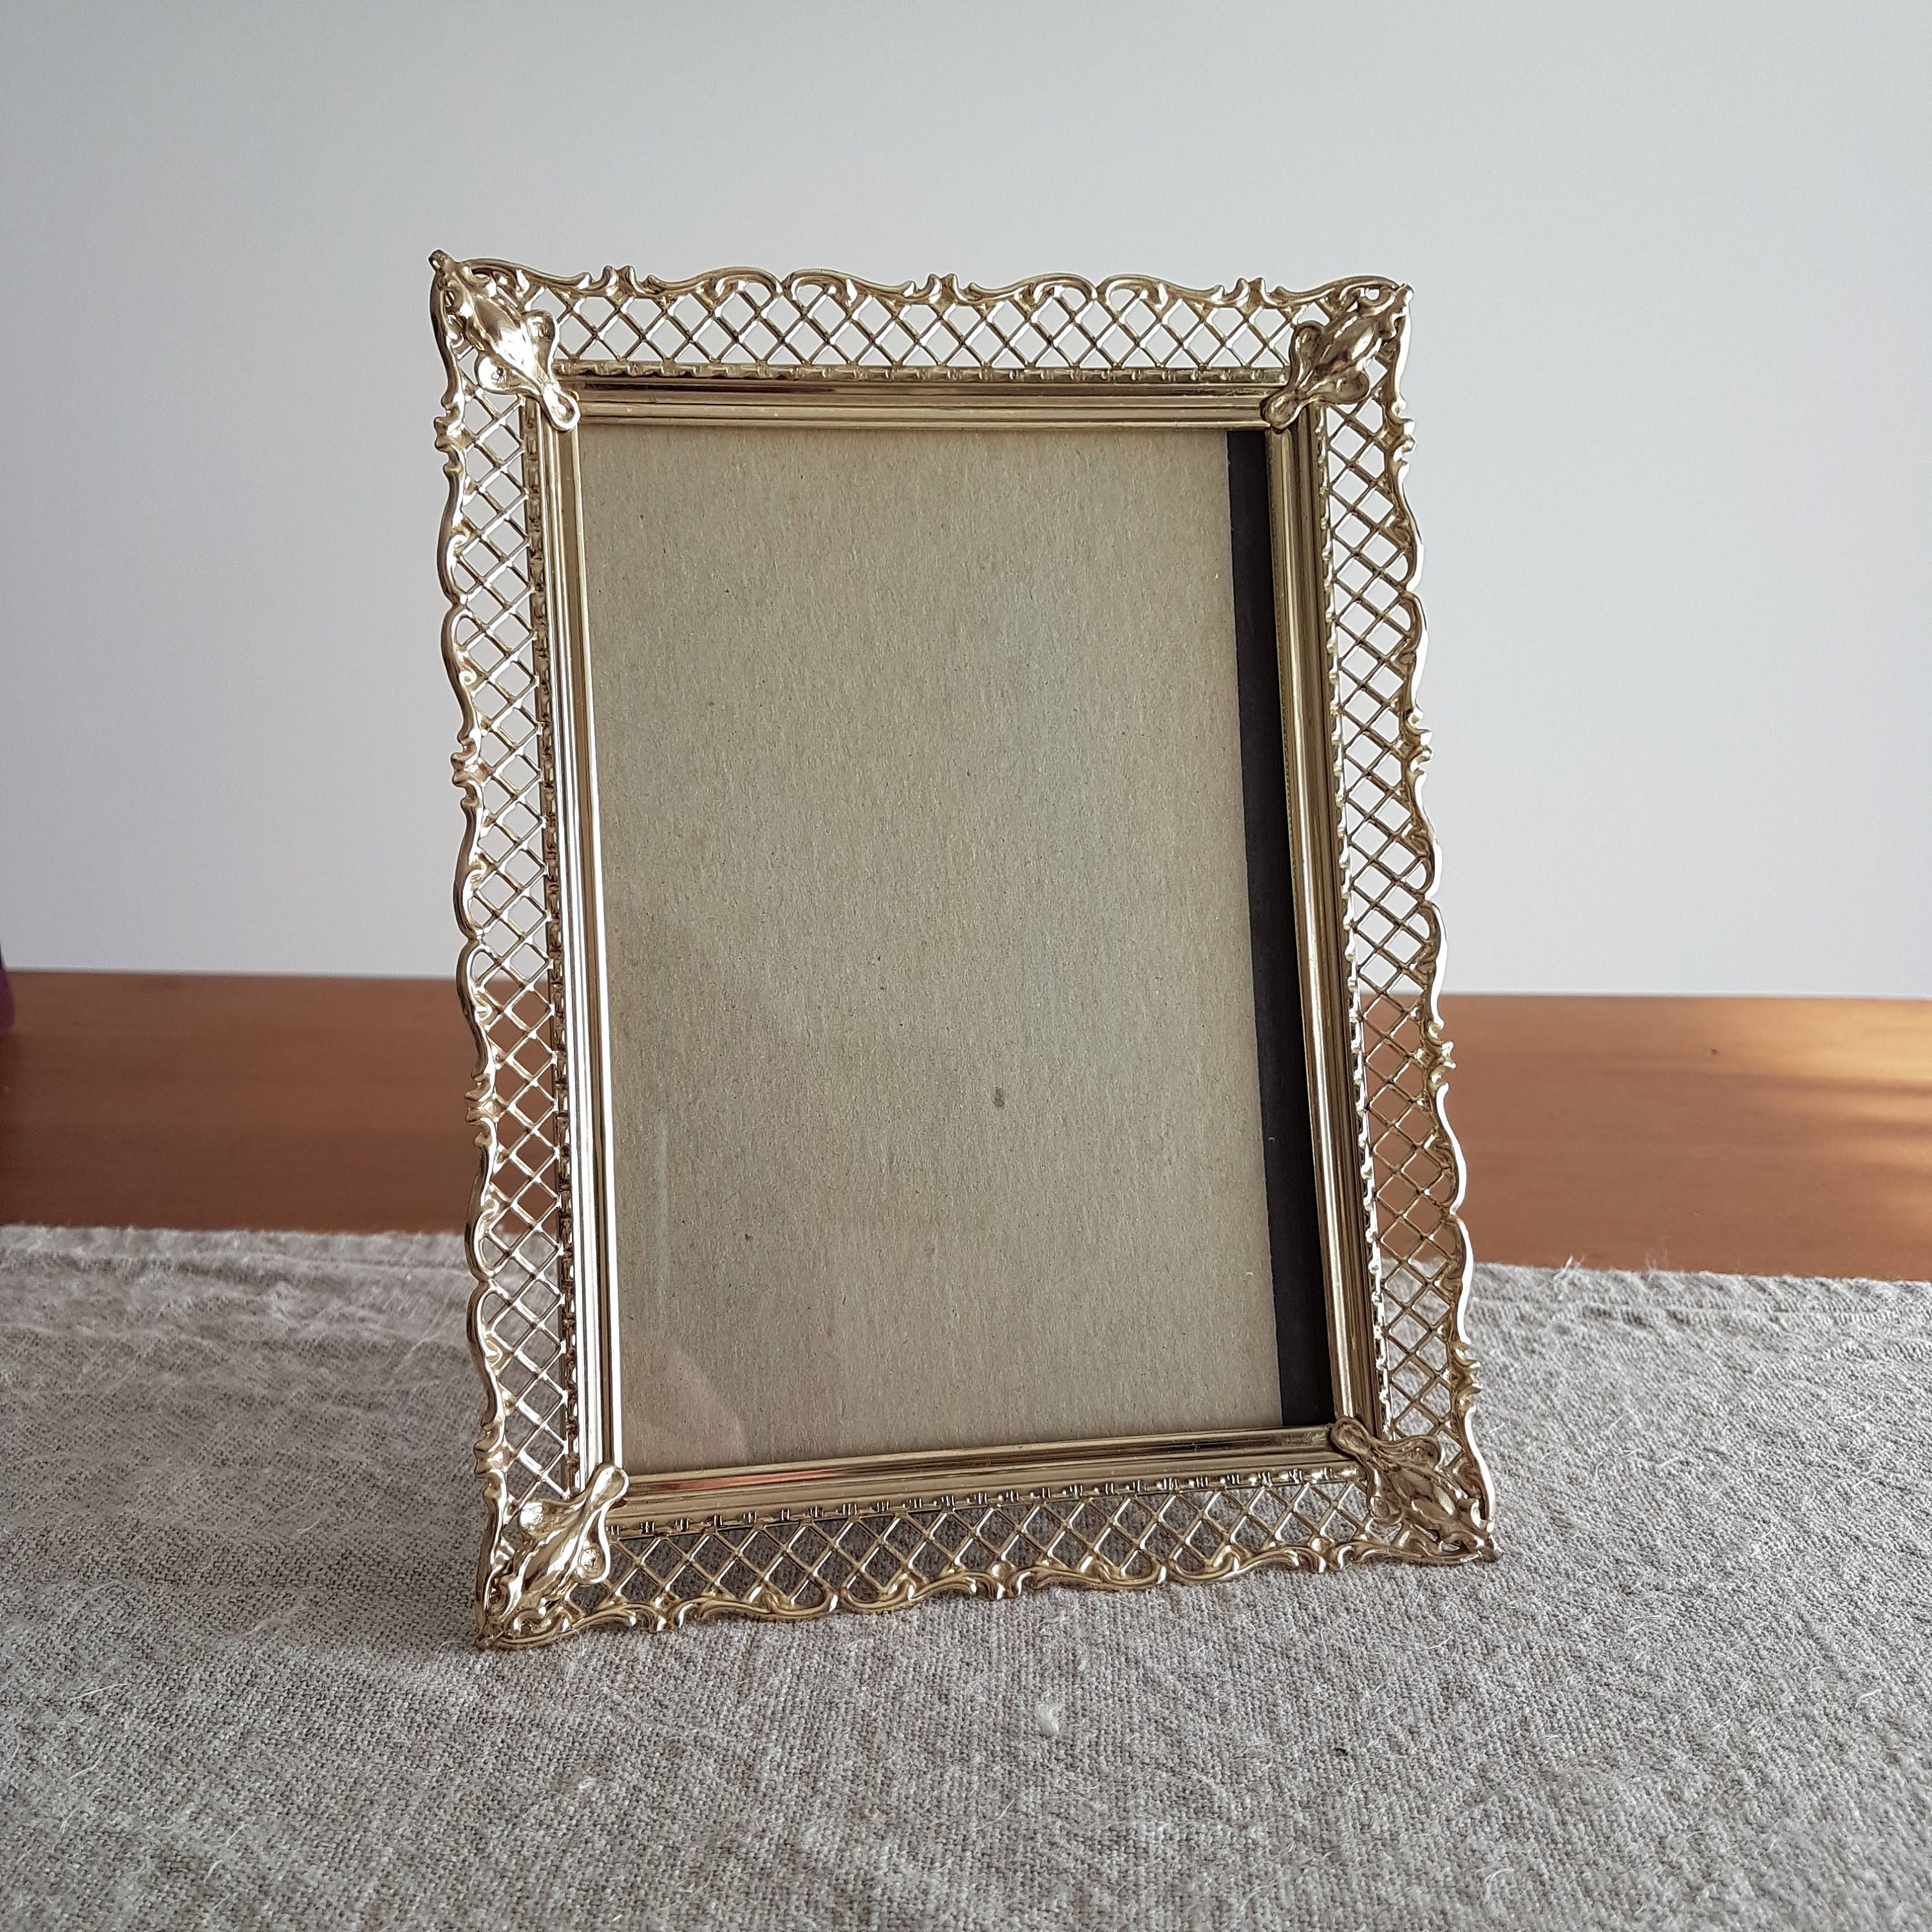 5 x 7 brass gold tone metal picture frames w ornate filigree 5 x 7 brass gold tone metal picture frames w ornate jeuxipadfo Images